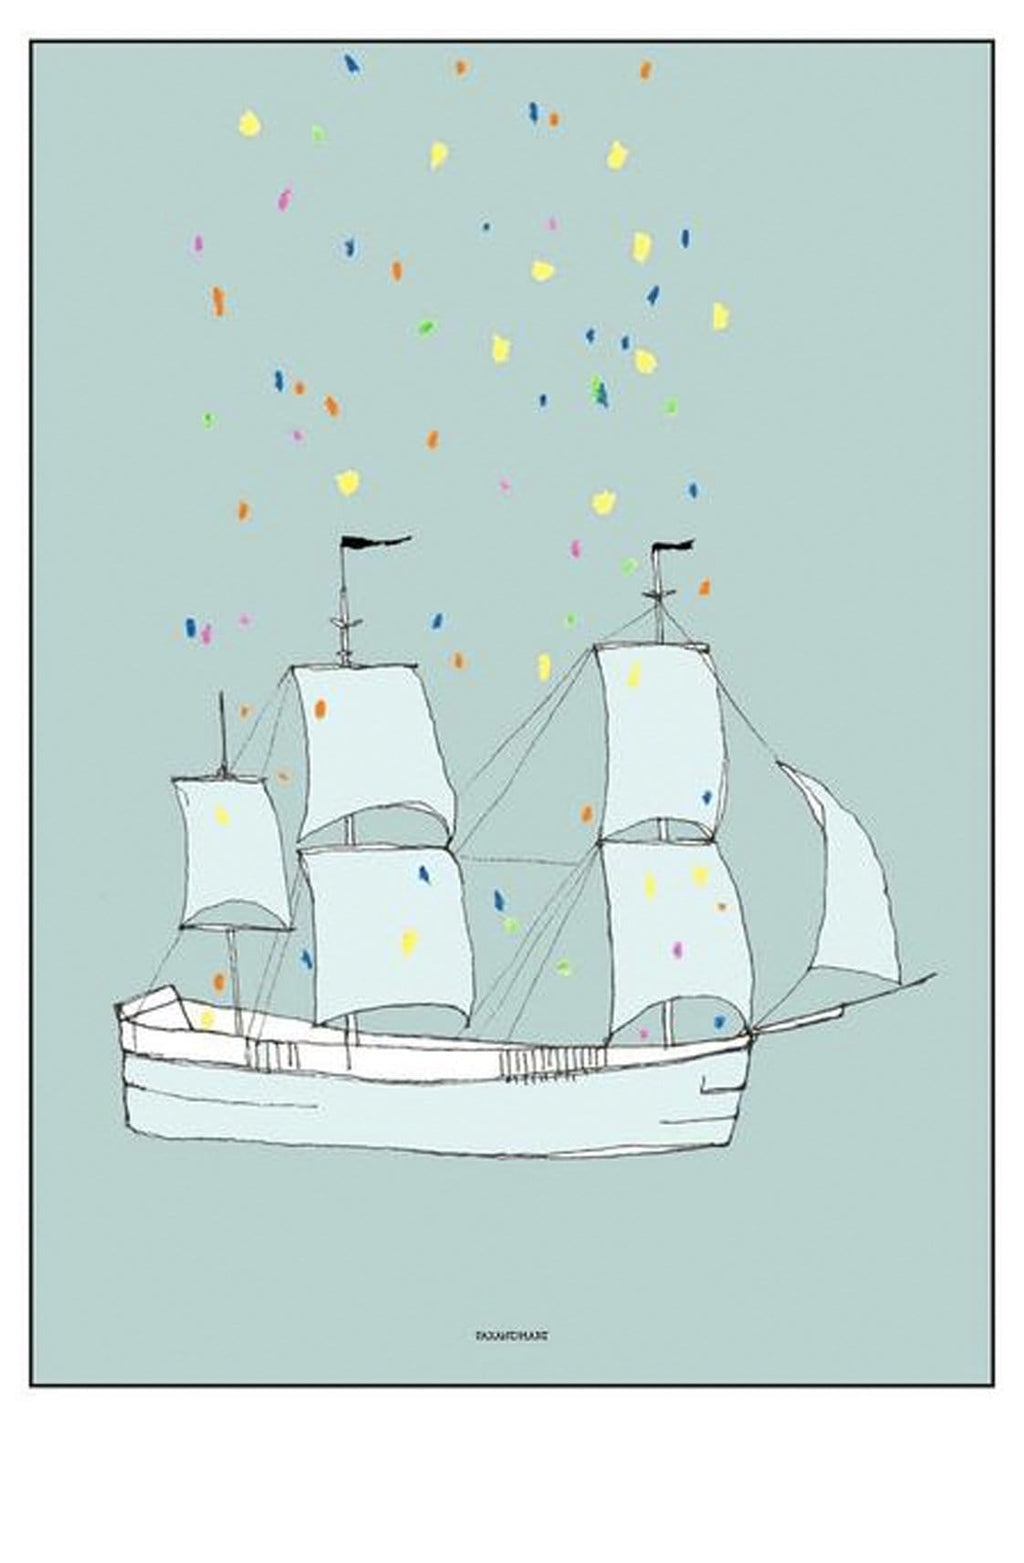 PAX AND HART THIS SHIP HAS SAILED POSTER, 50 x 70CM - Hello Little Birdie